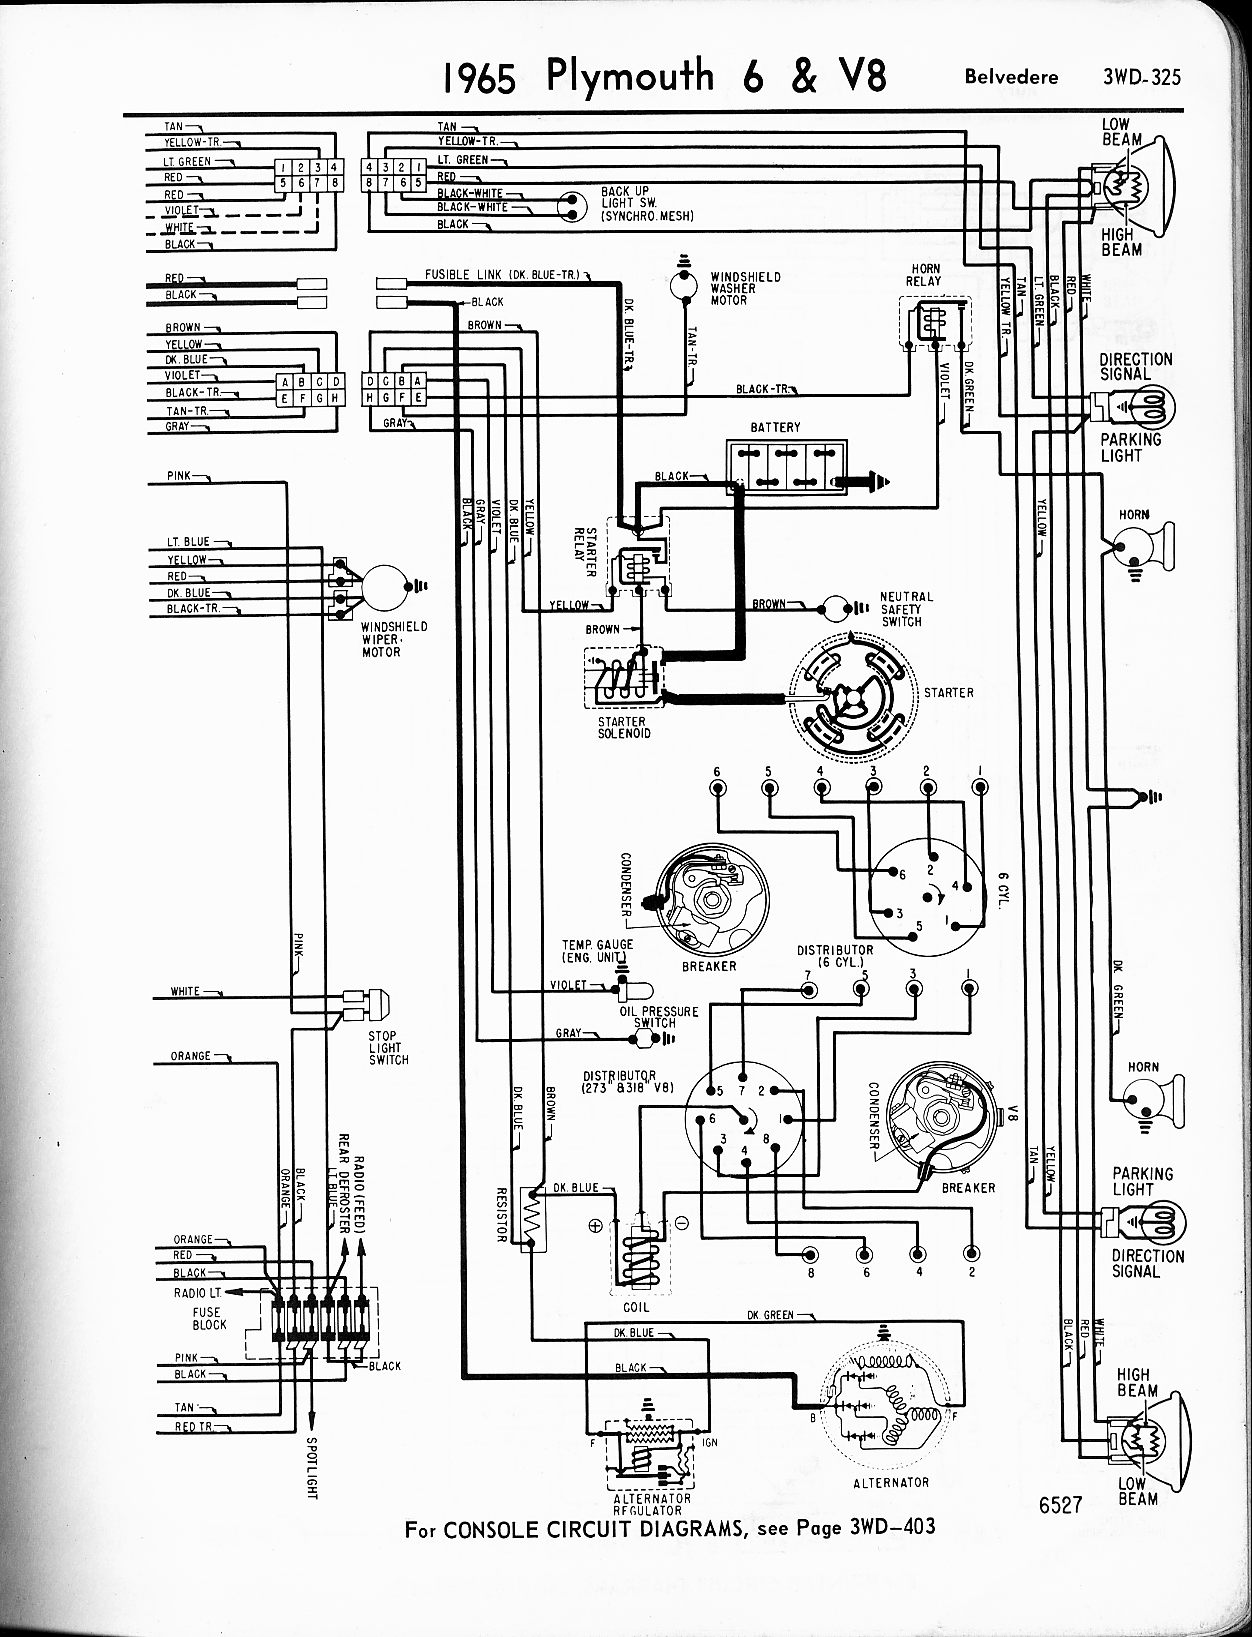 1973 Jeep Cj5 Wiring Diagram Free Picture Library 1965 For 1956 Plymouth The Old Car Manual Project Fury